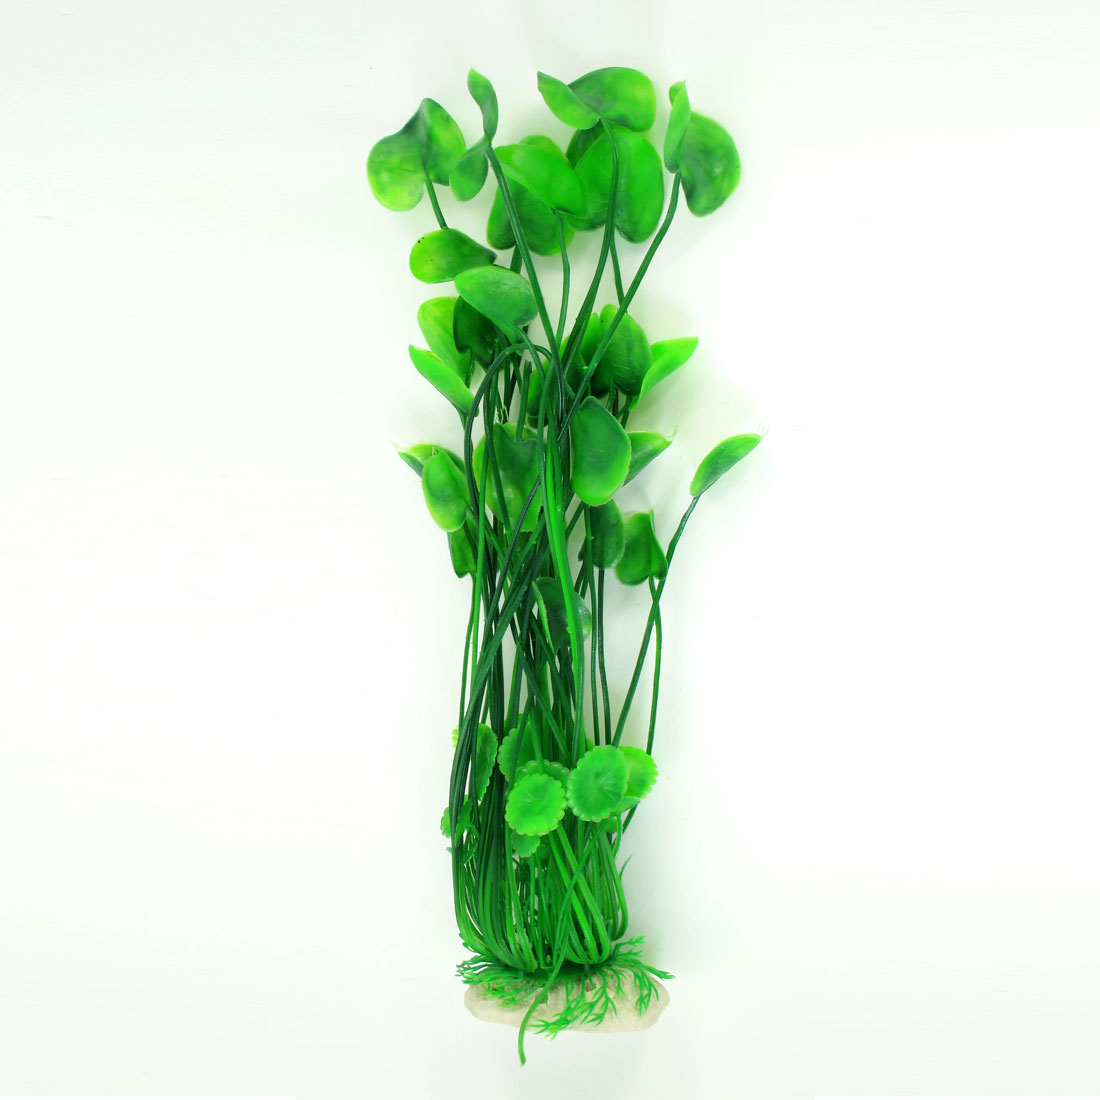 Aquarium Landscaping Manmade Green Plastic Plant Water Grass 37cm Height